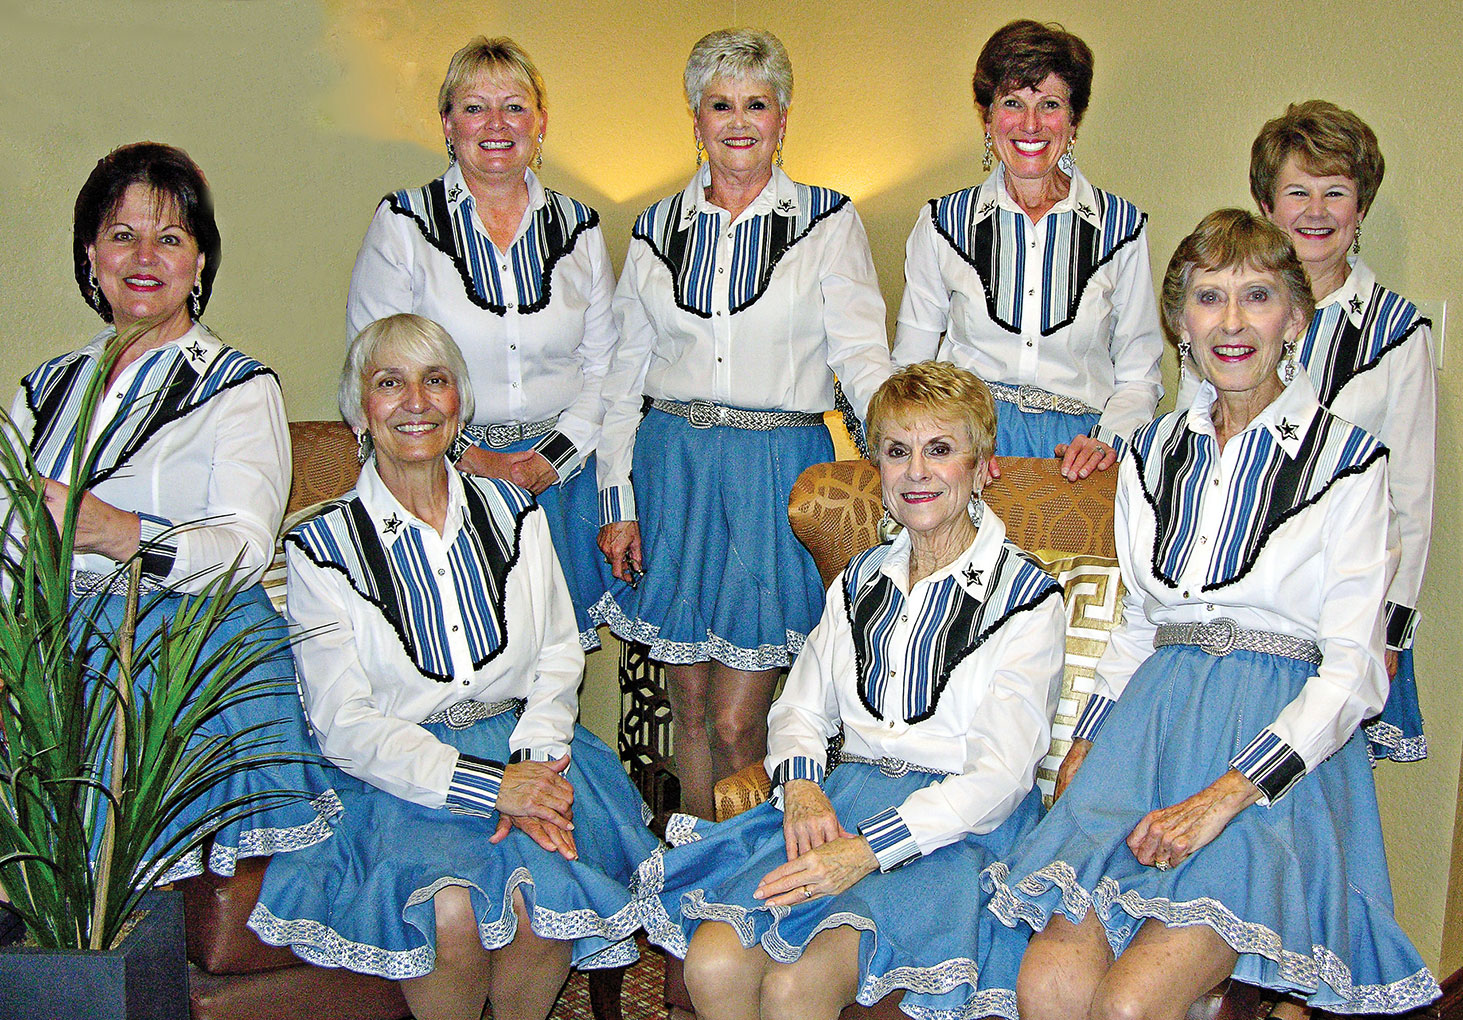 From left, front: Sylvia Bonesky, Donna Leonard, Pat Cox and Pat Tiefenbach; from left, back: Jo Helms, Carol Jones, Diane Korn and Stephanie Cady.